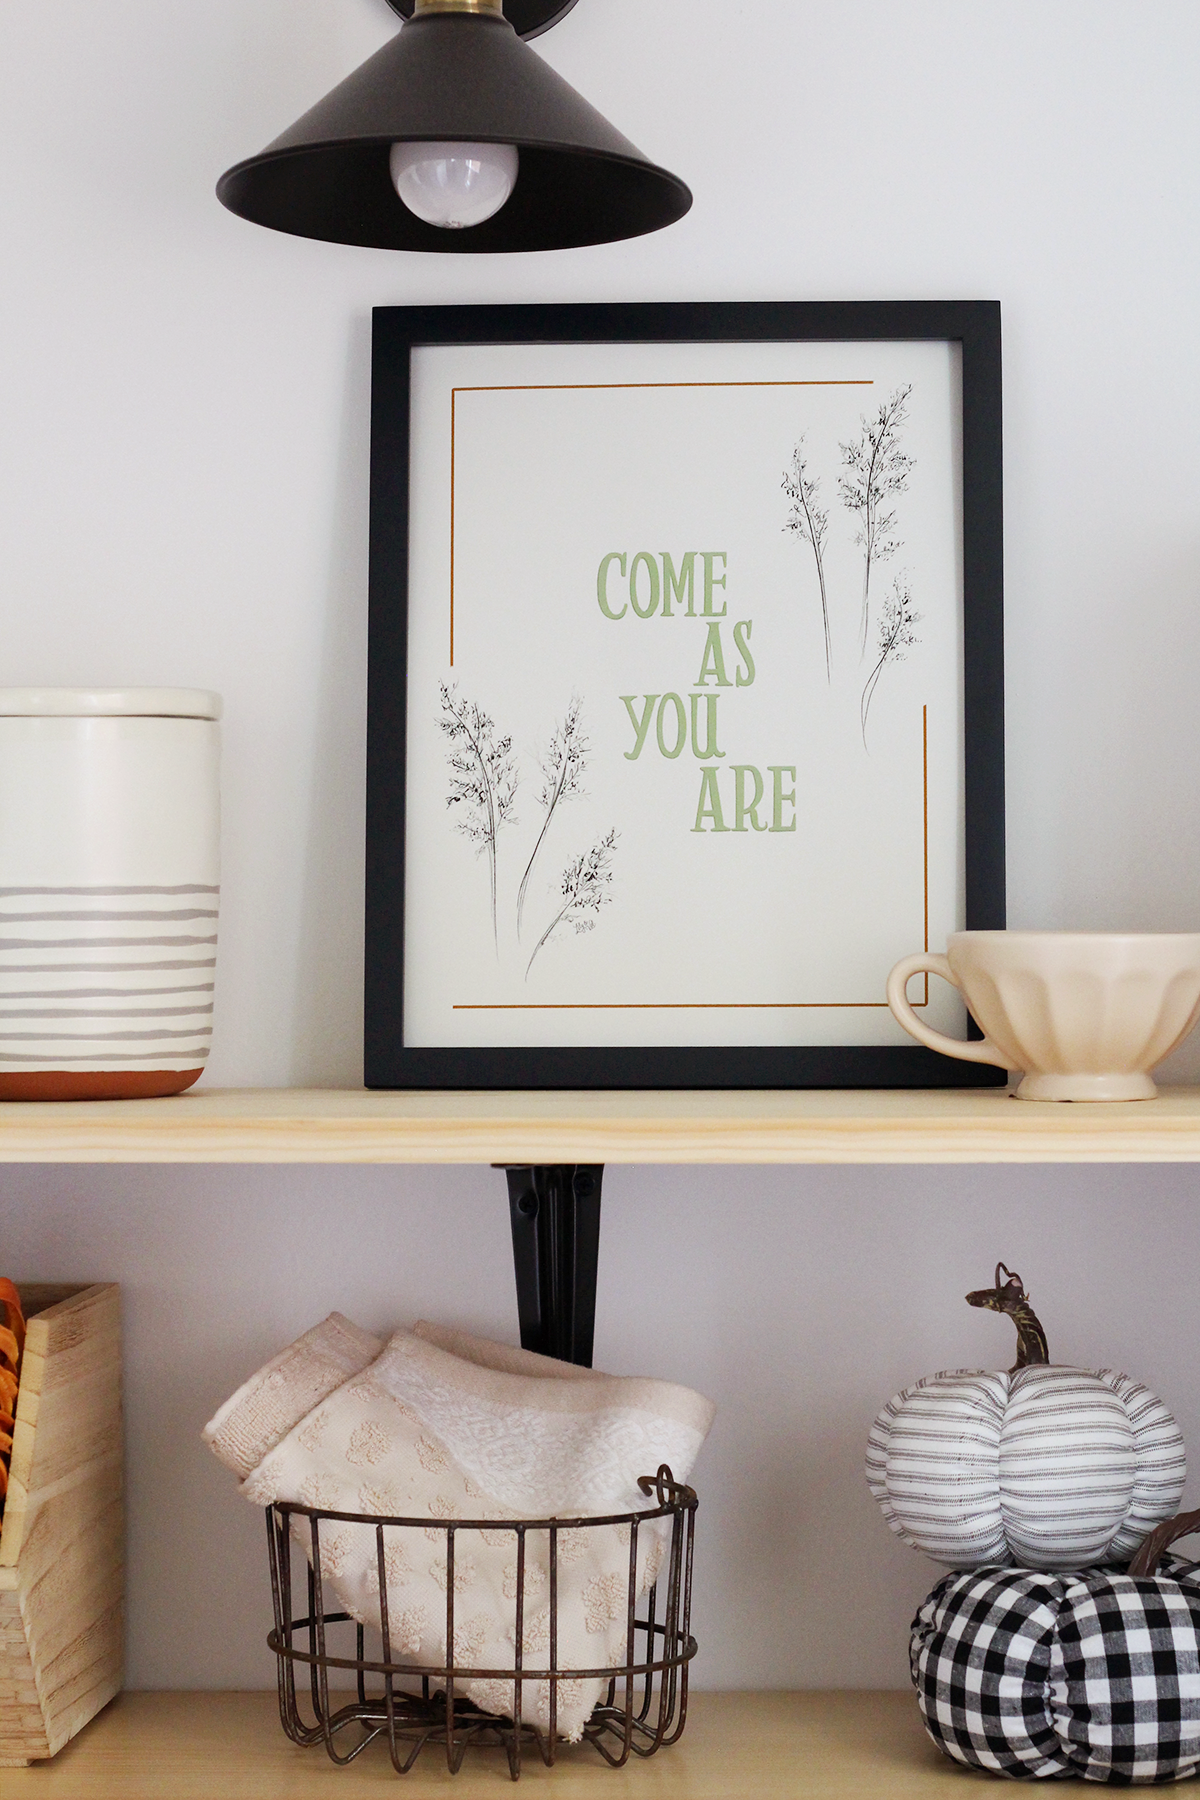 Come as your are. Fall home decor art print